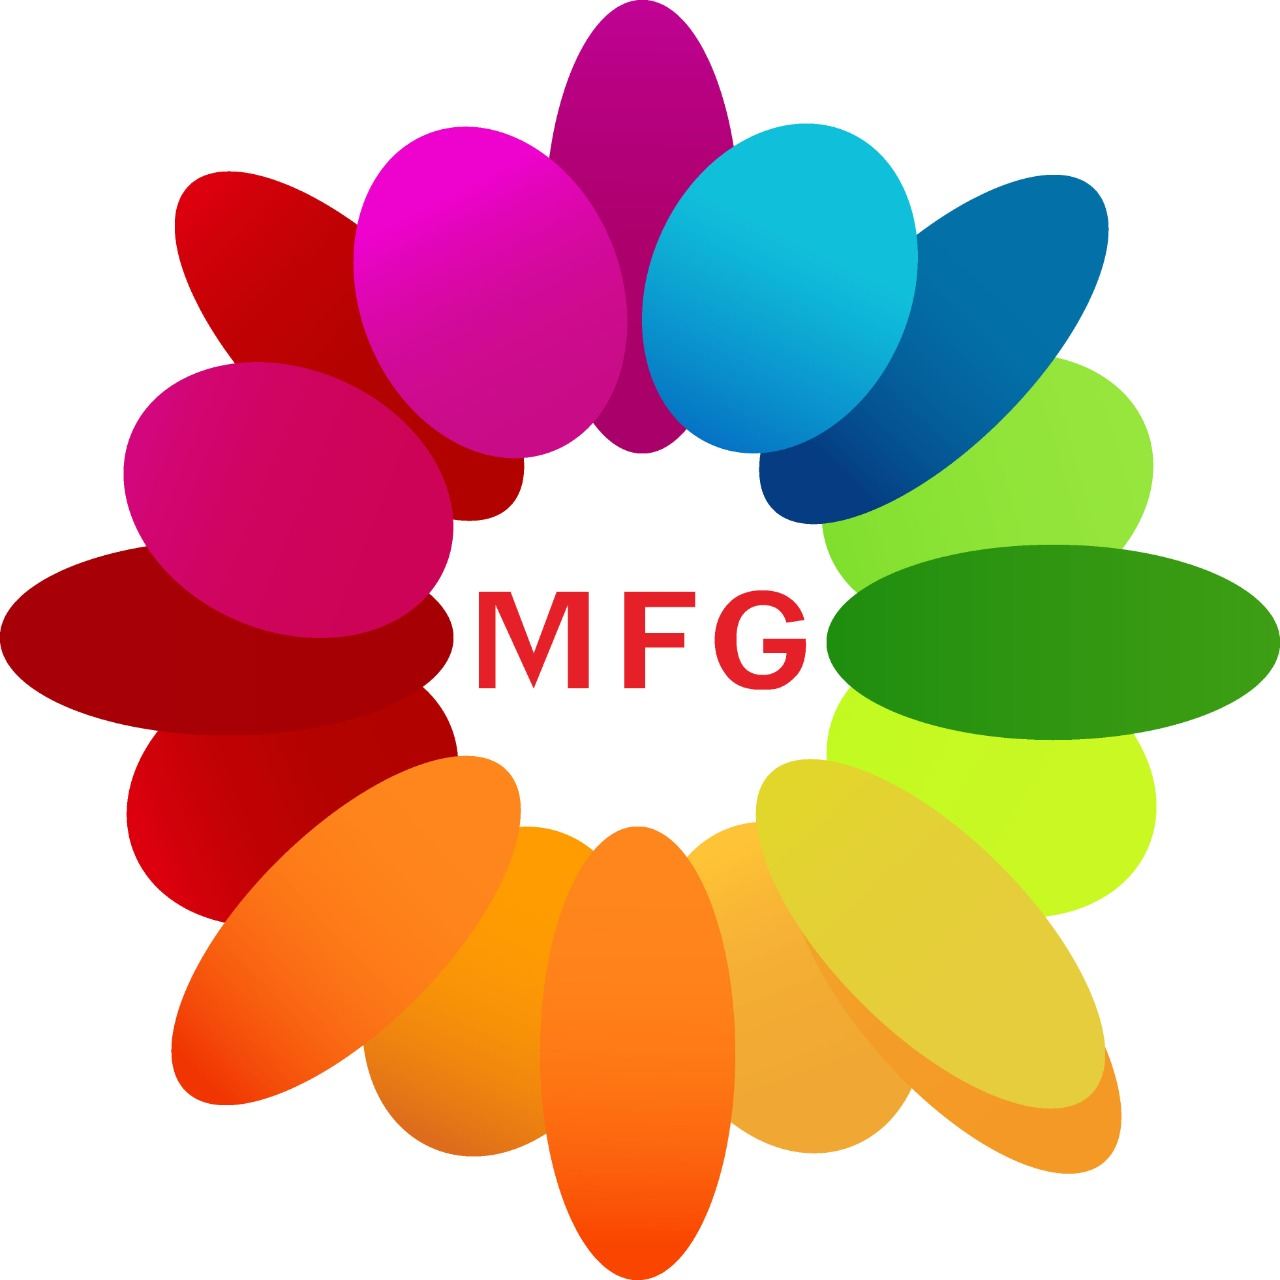 10 Pink and white lilies in a glass vase